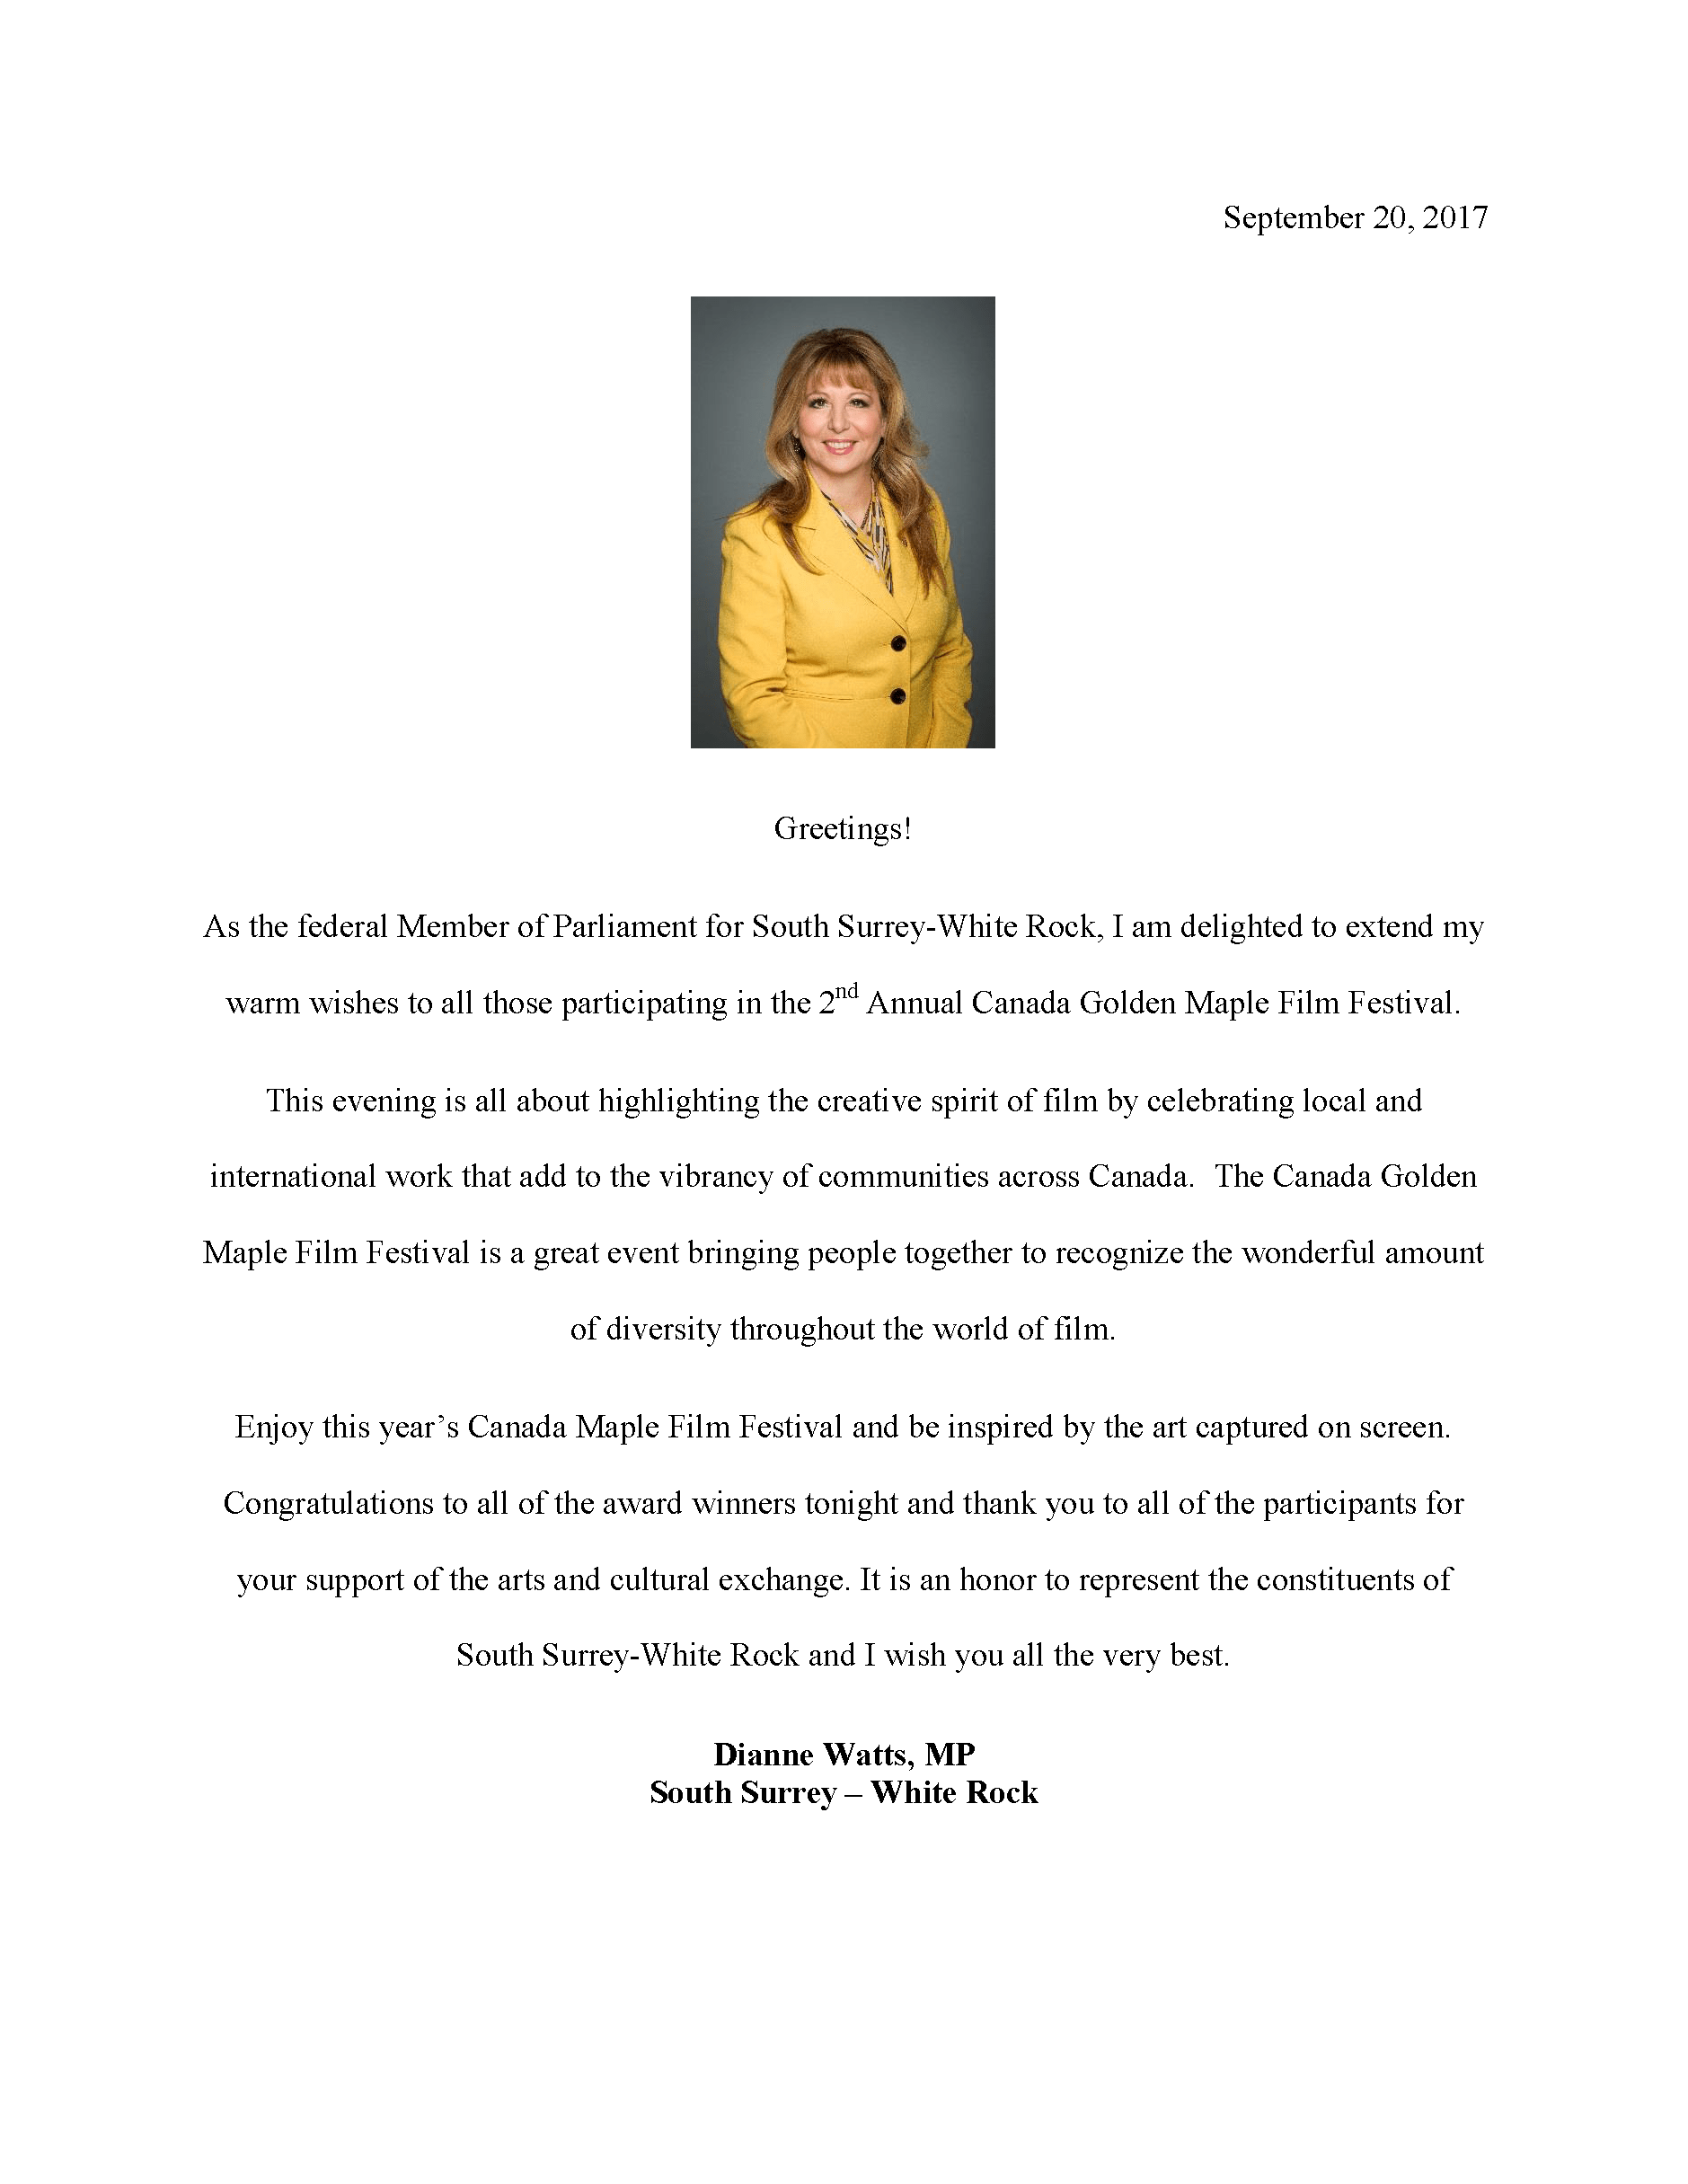 Congratulatory Letter from Dianne Watts, Federal Member of Parliament